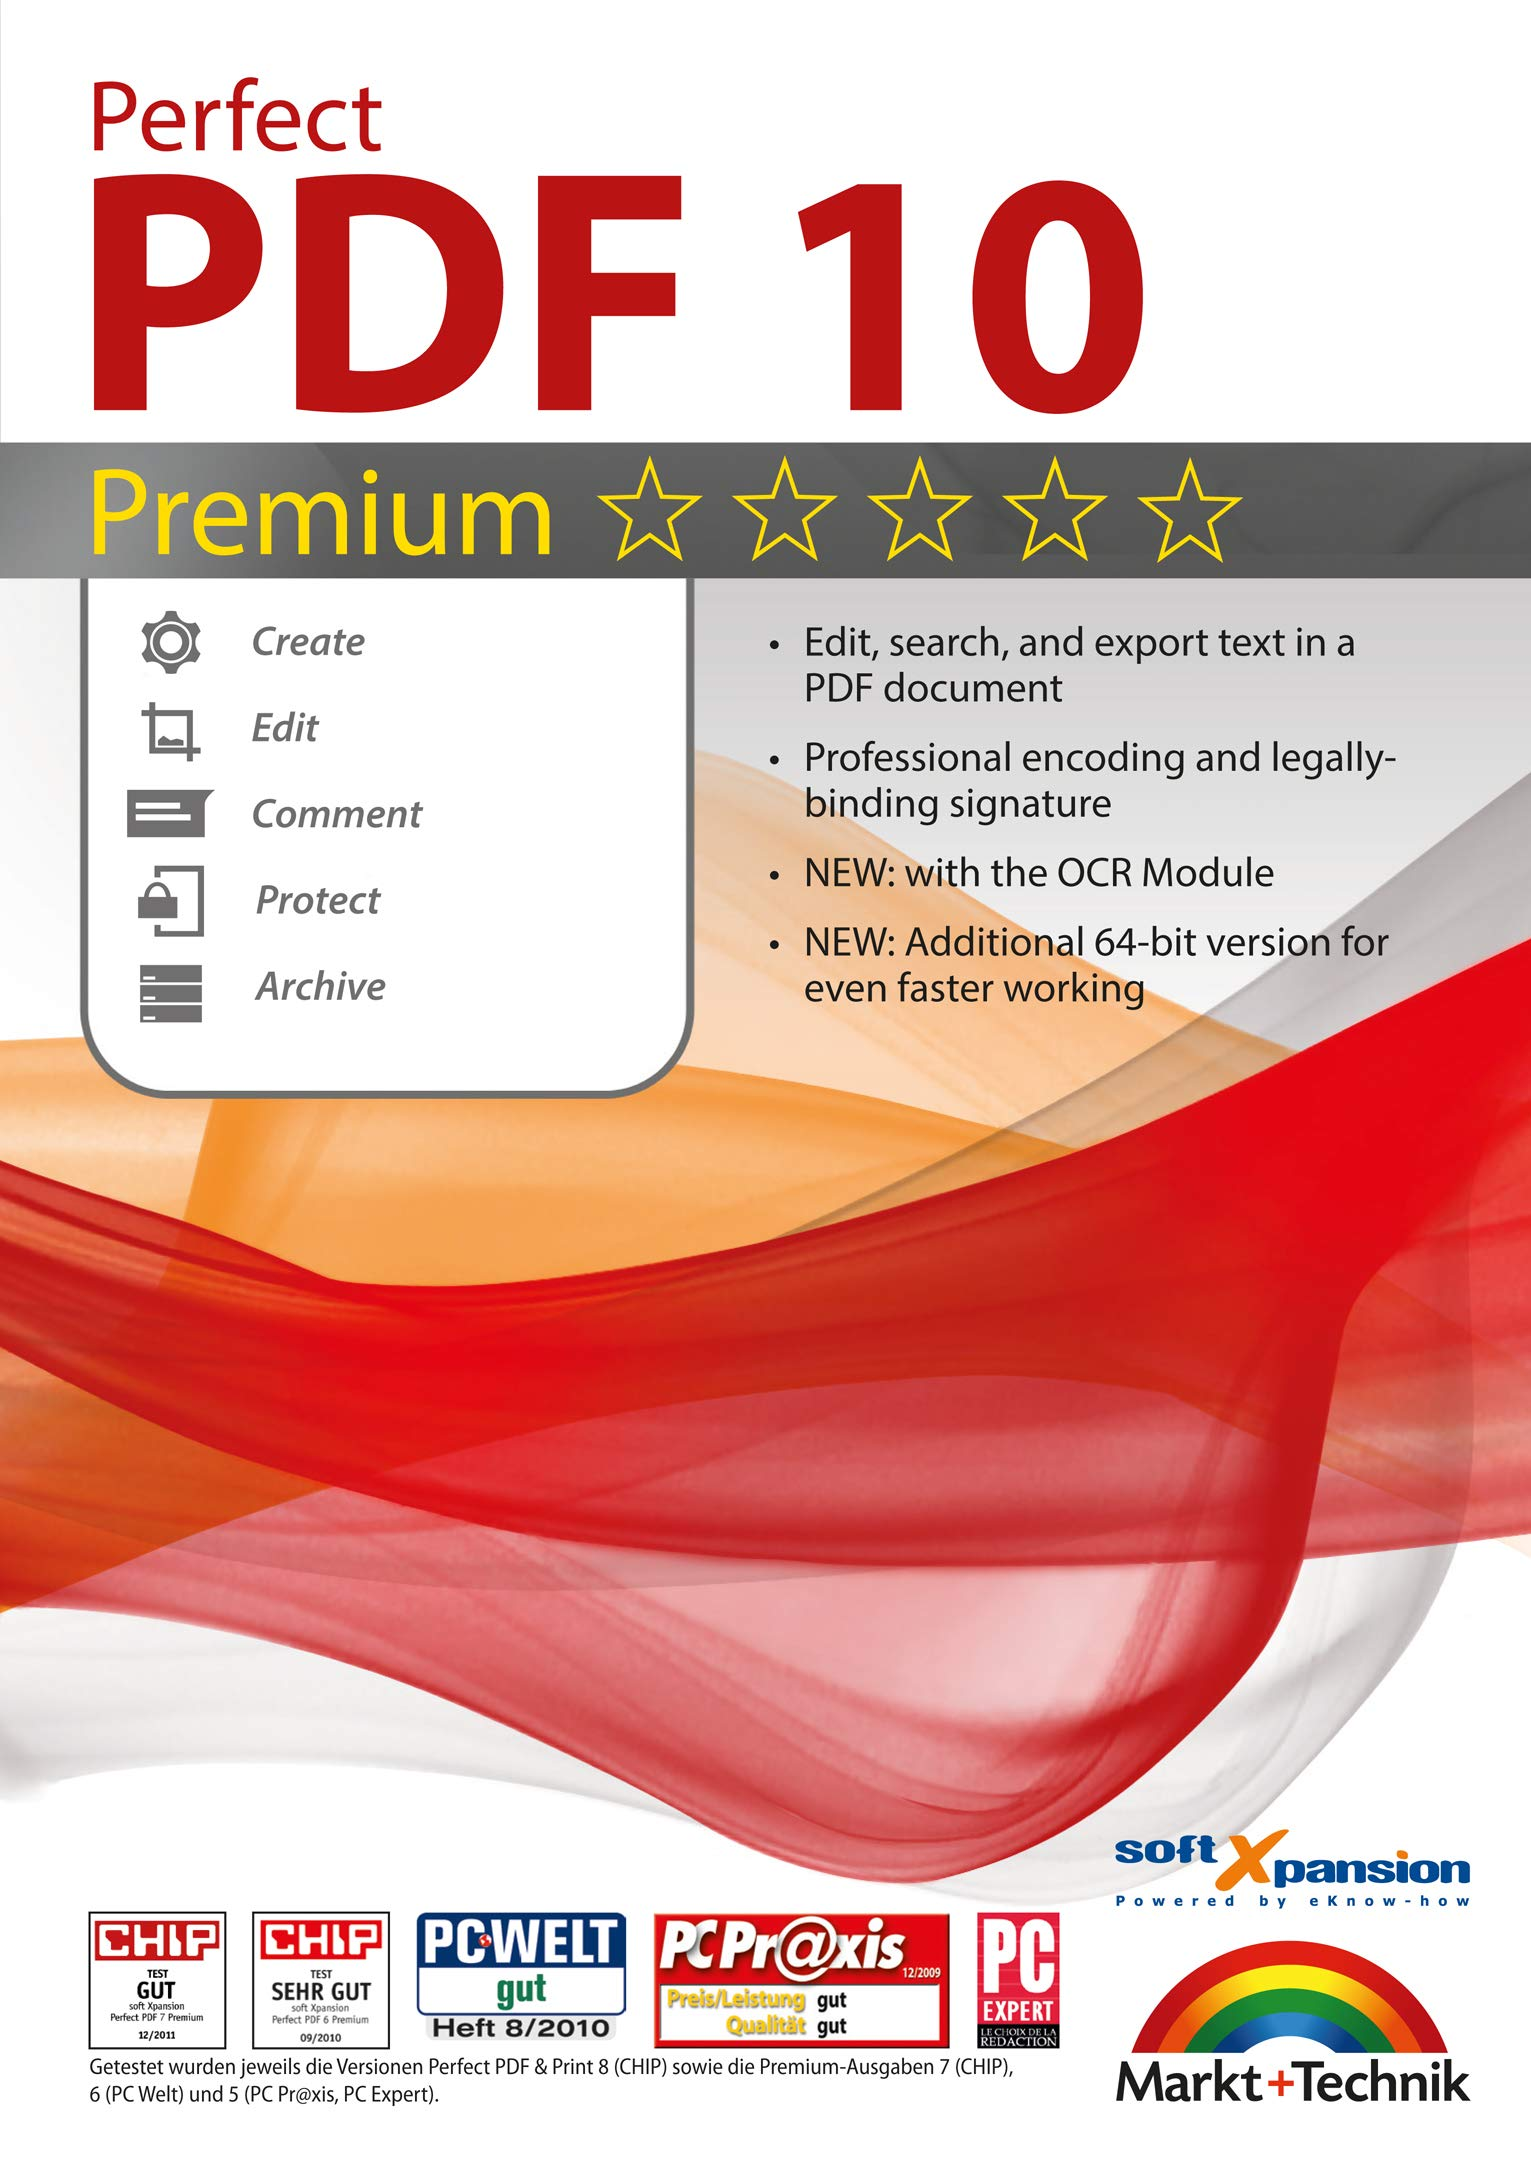 Perfect PDF 10 PREMIUM with the OCR Module Create, Edit, Convert, Protect, Add Comments to, Insert Digital Signatures in PDFs | 100% Compatible with Adobe Acrobat by Markt+Technik